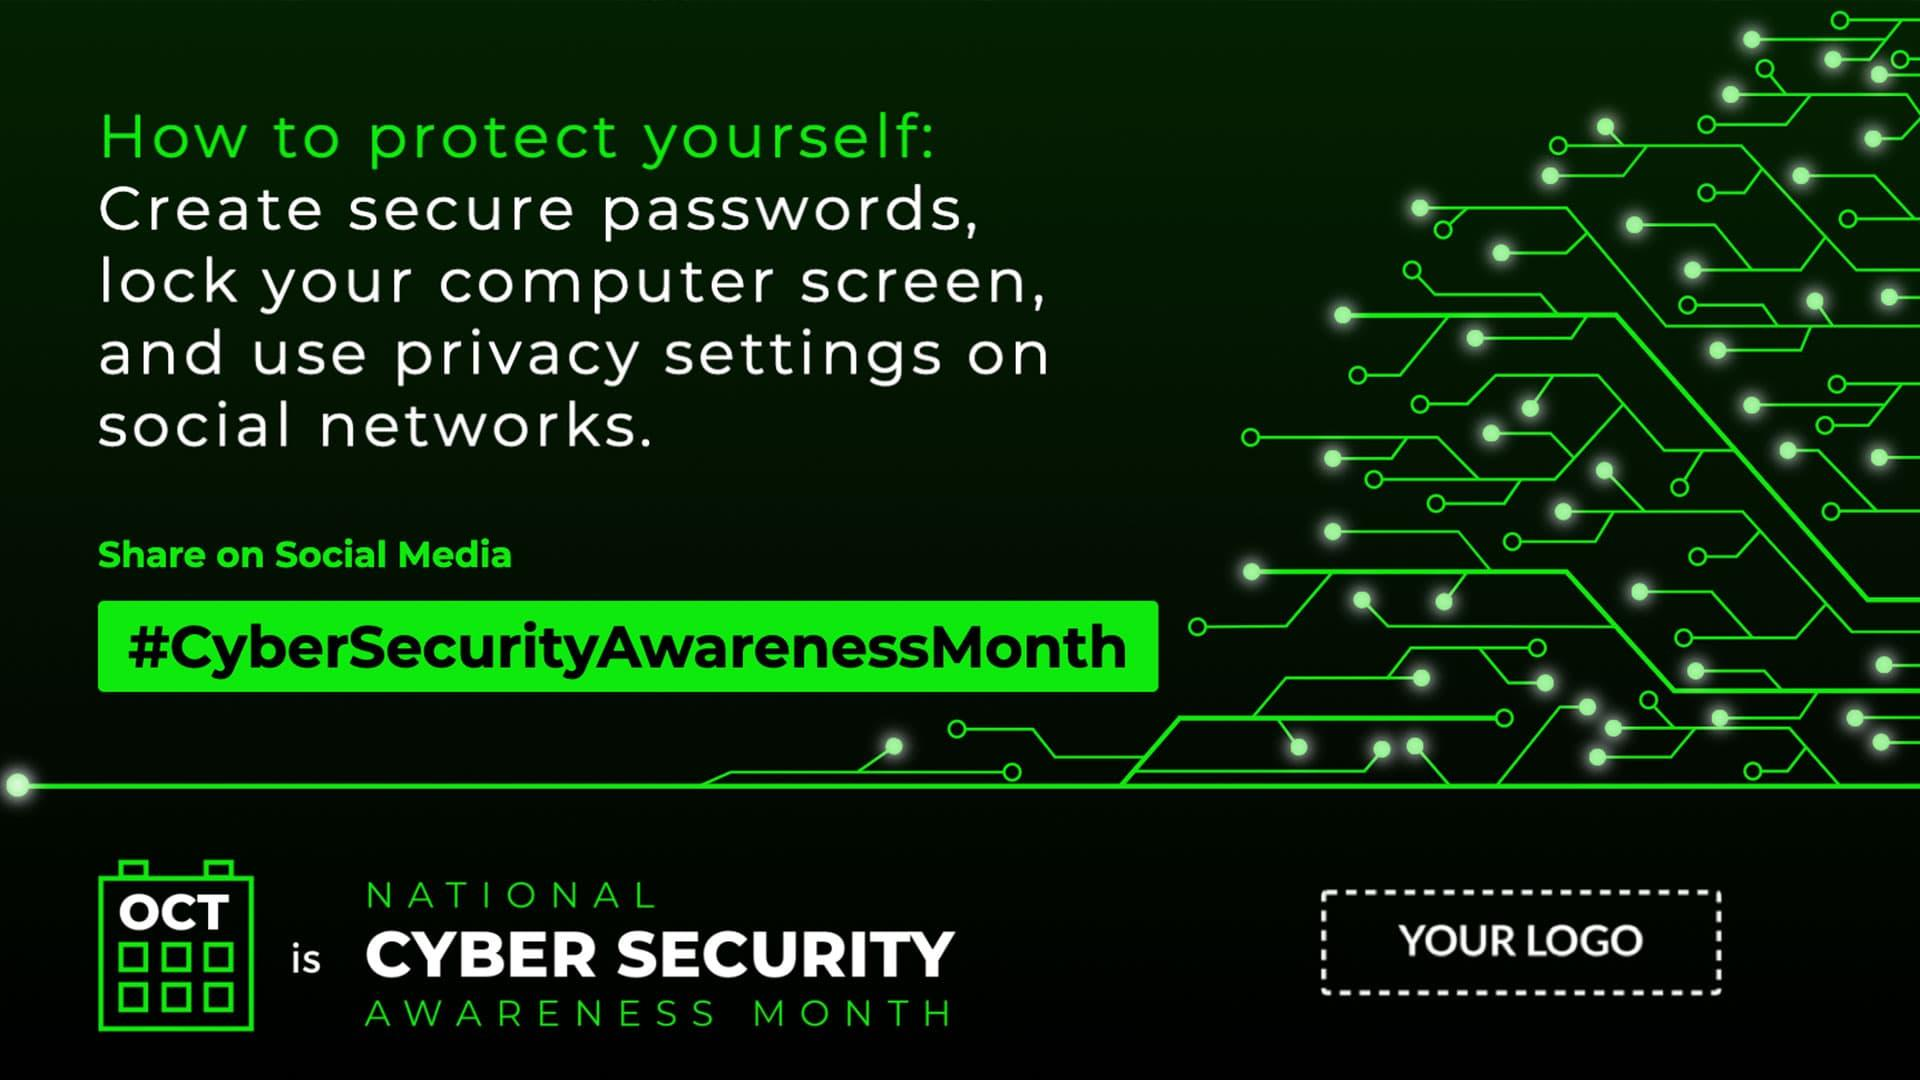 Cyber Security Awareness Month Digital Signage Template